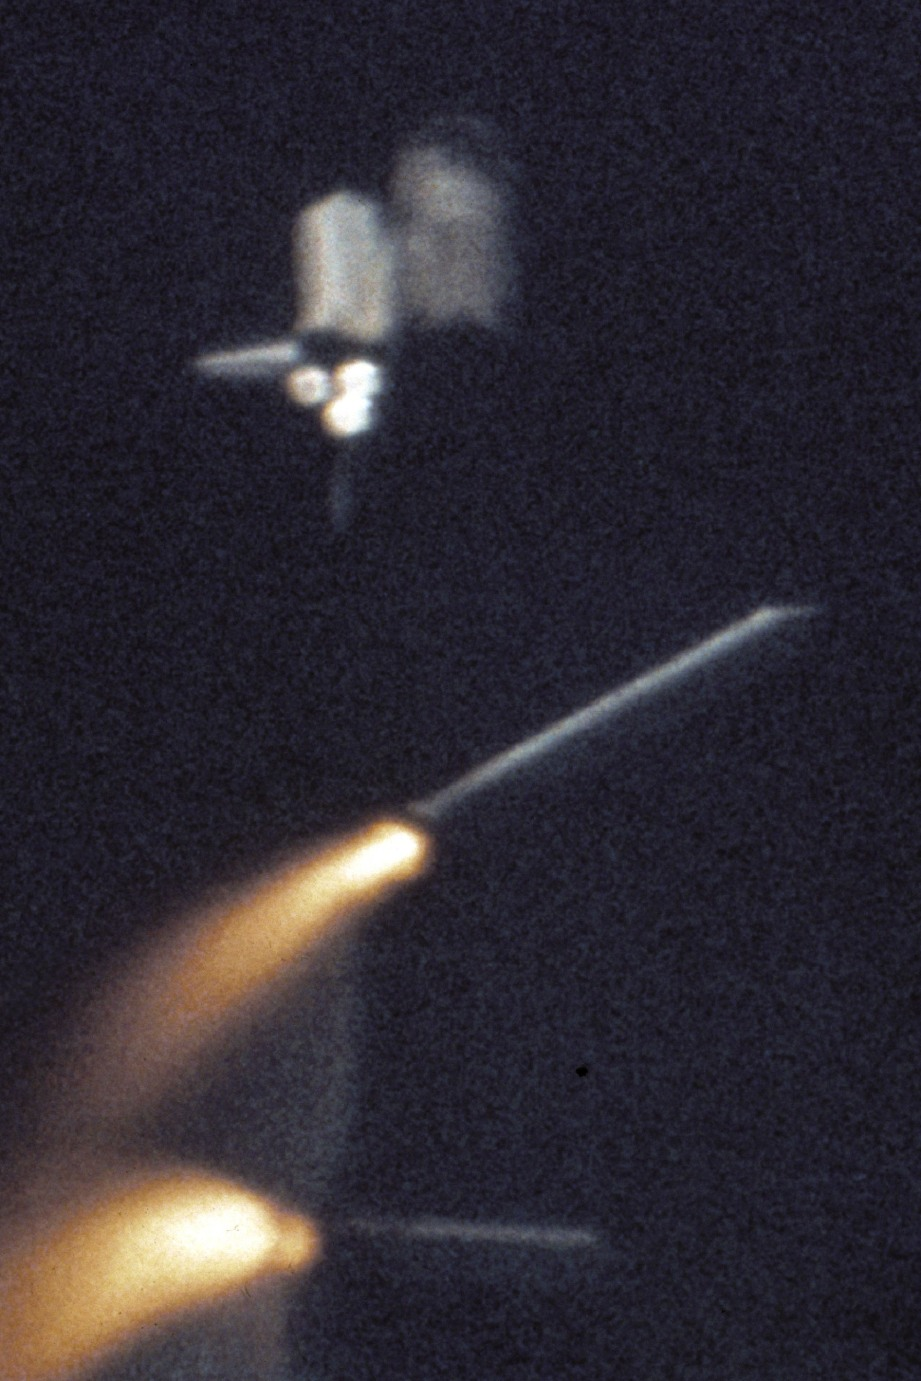 The Shuttle's Solid Rocket Boosters break away and fall to Earth about two minutes after liftoff.